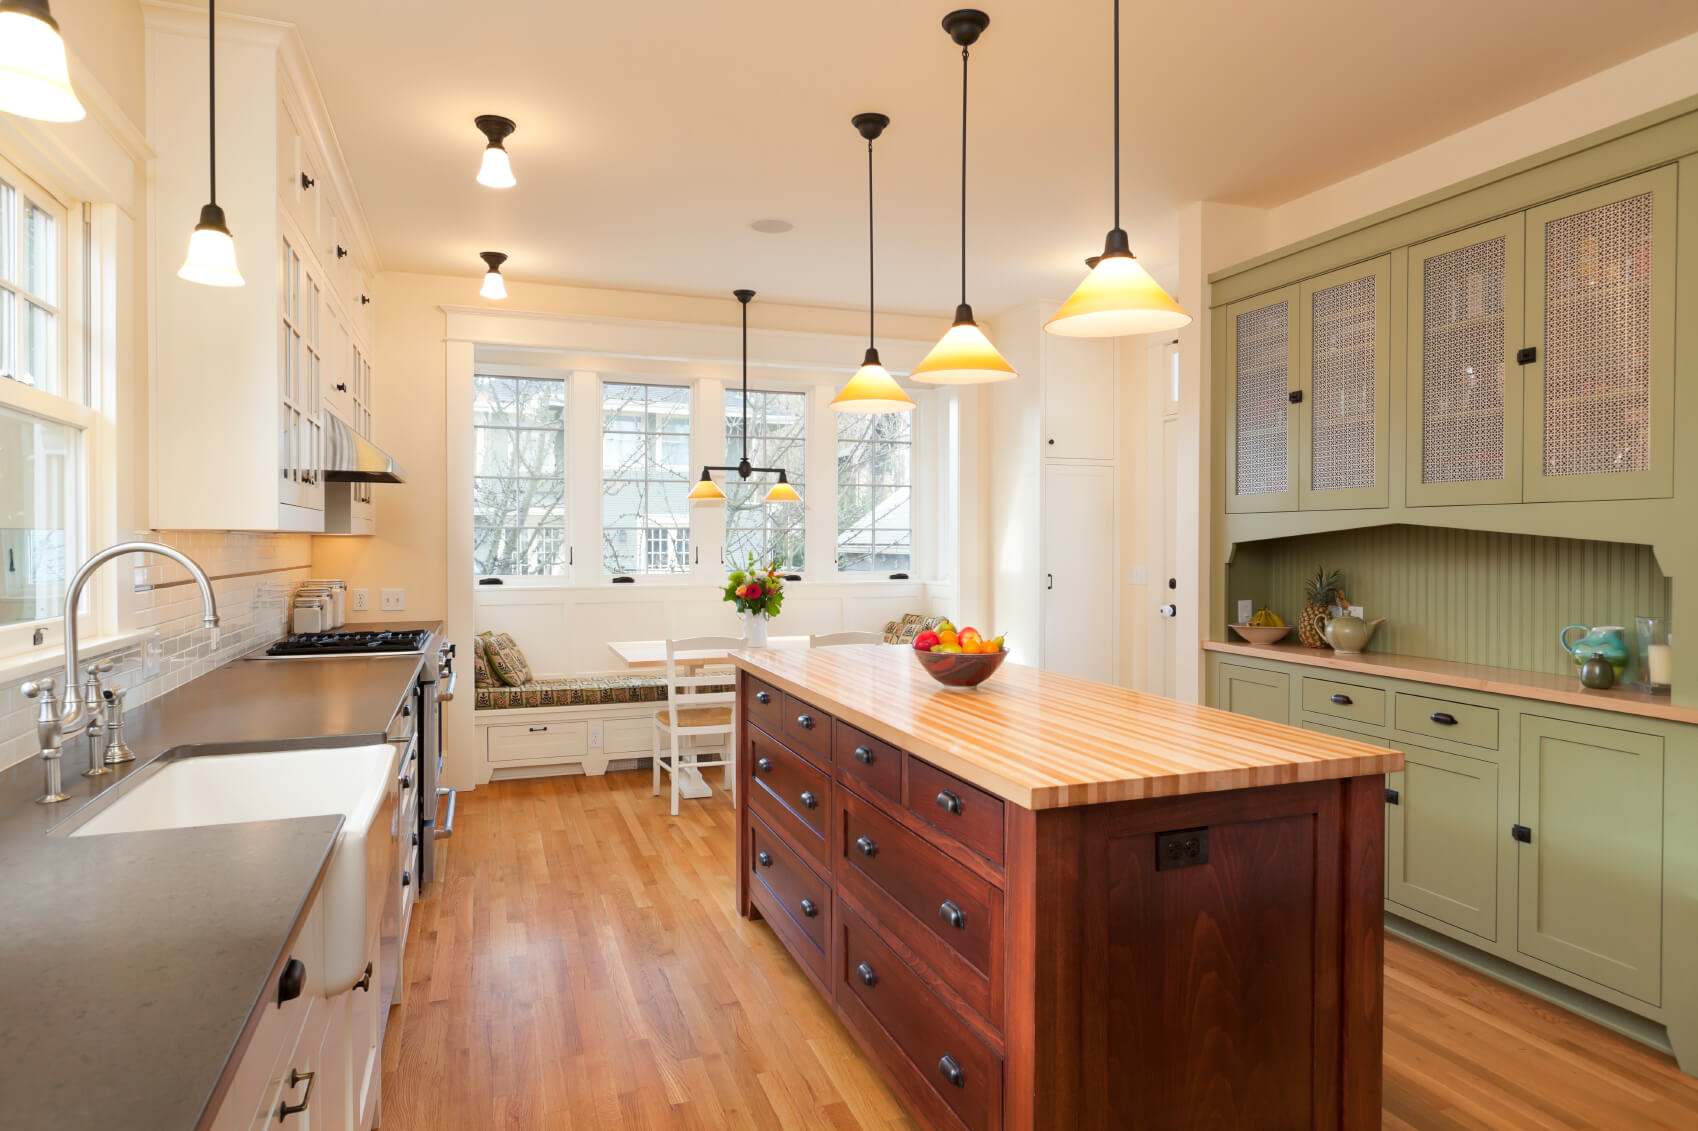 i include this kitchen in our galley kitchen photo gallery because the end is a long